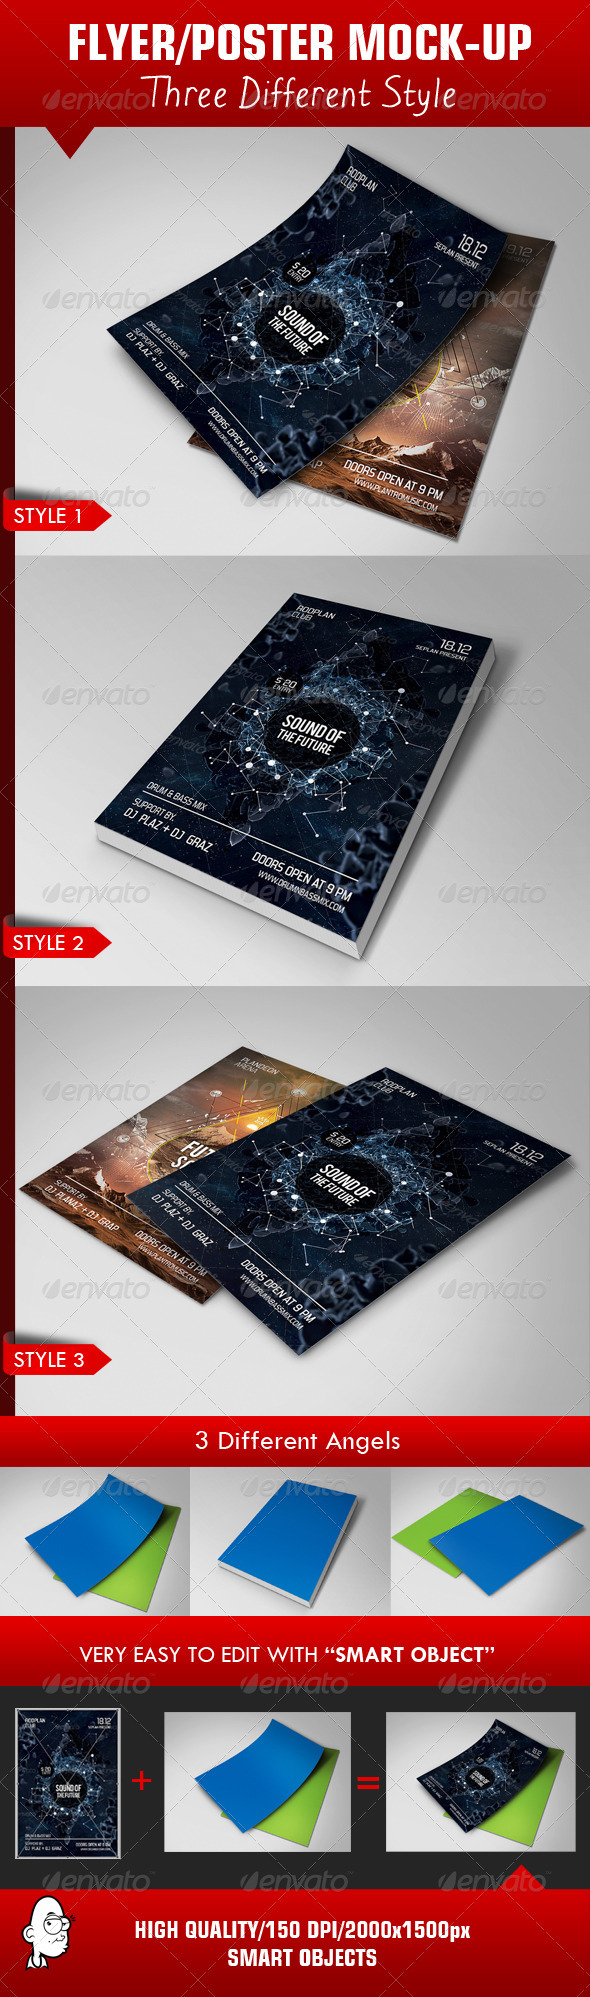 GraphicRiver Flyer Poster Mock-up Template 3962254